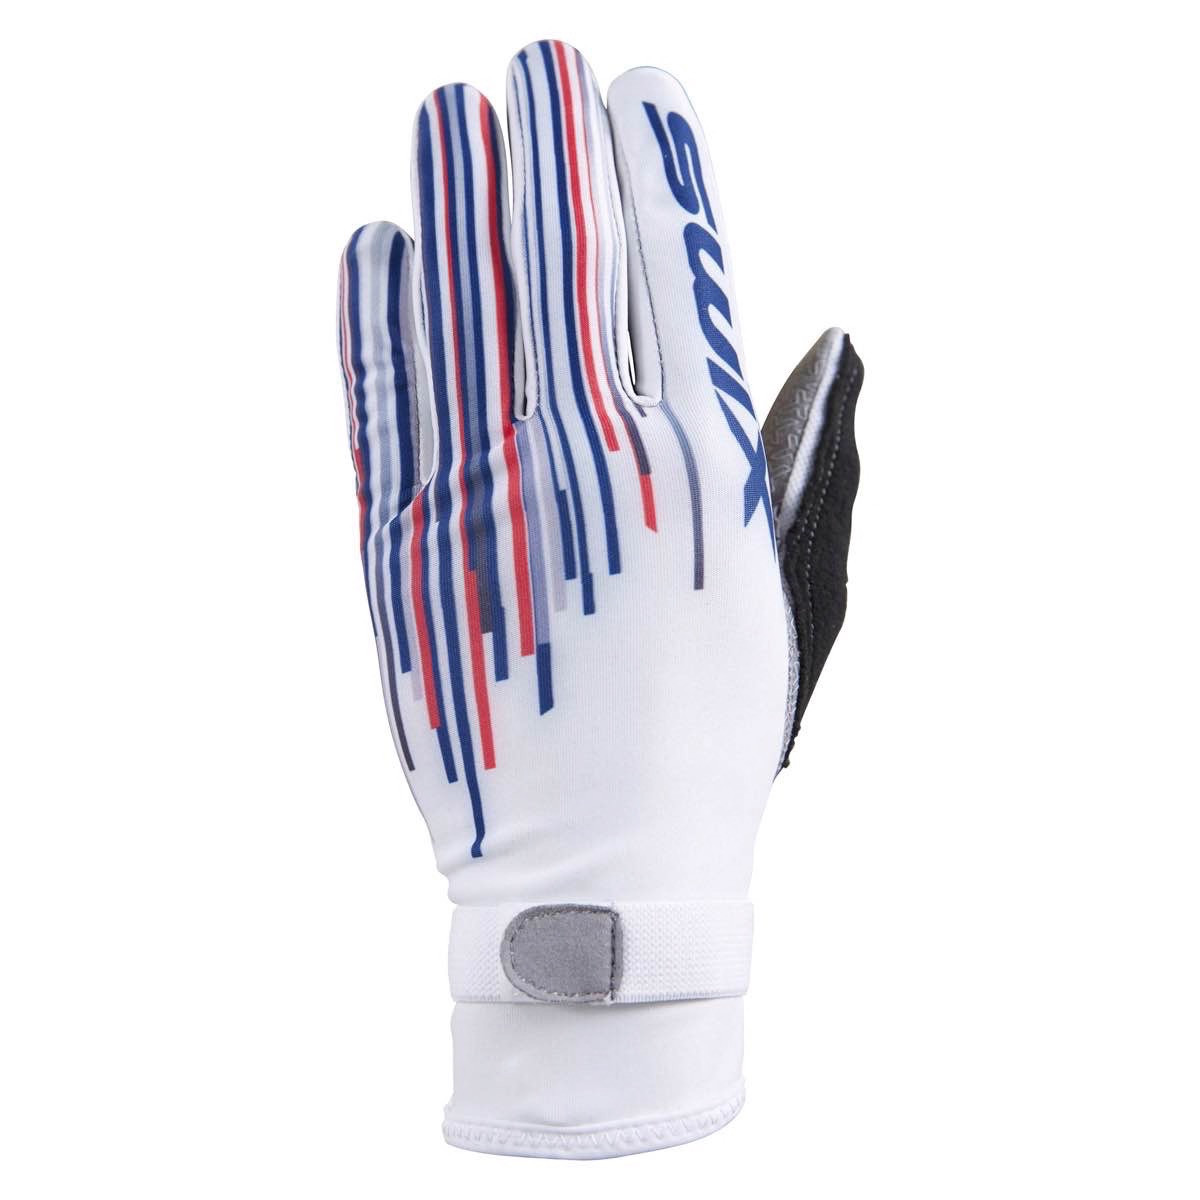 Swix Competition glove